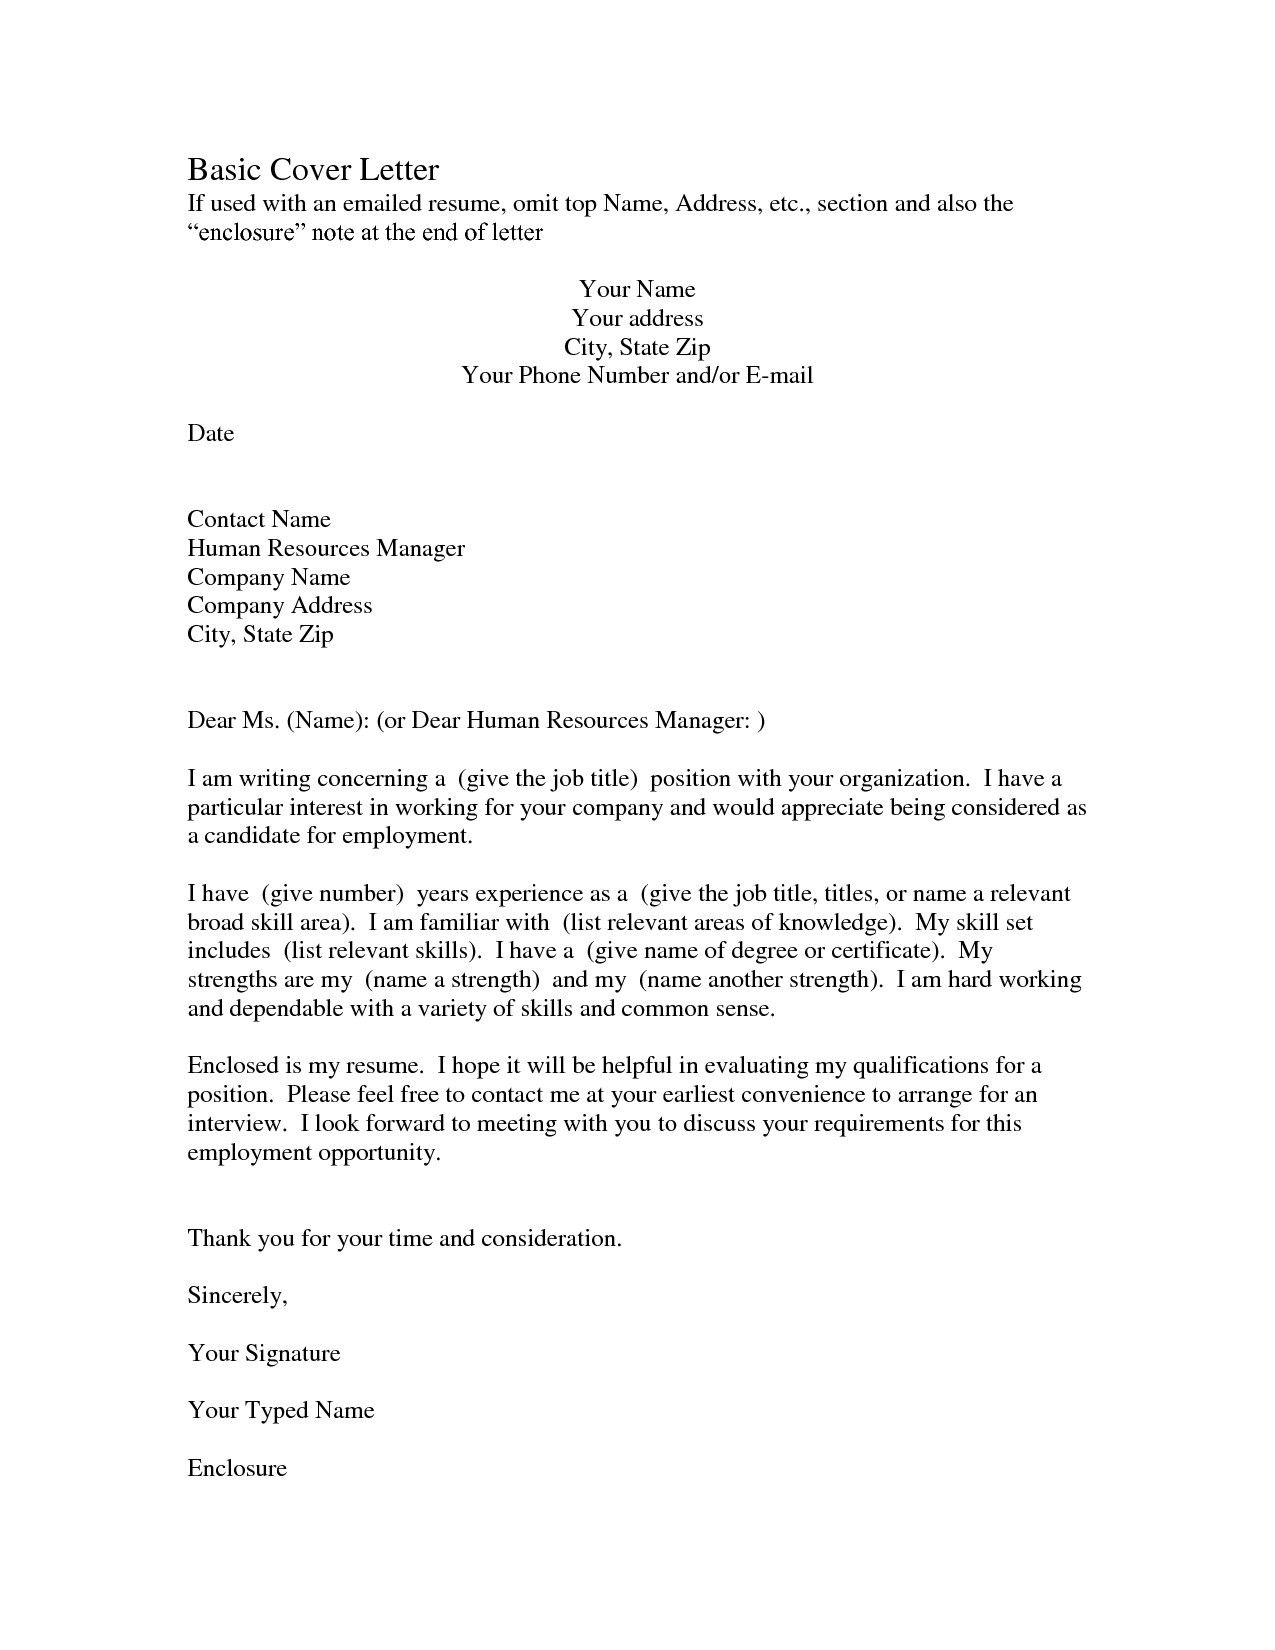 Template for Application Letter for Employment - Free Resume Cover Letter format S